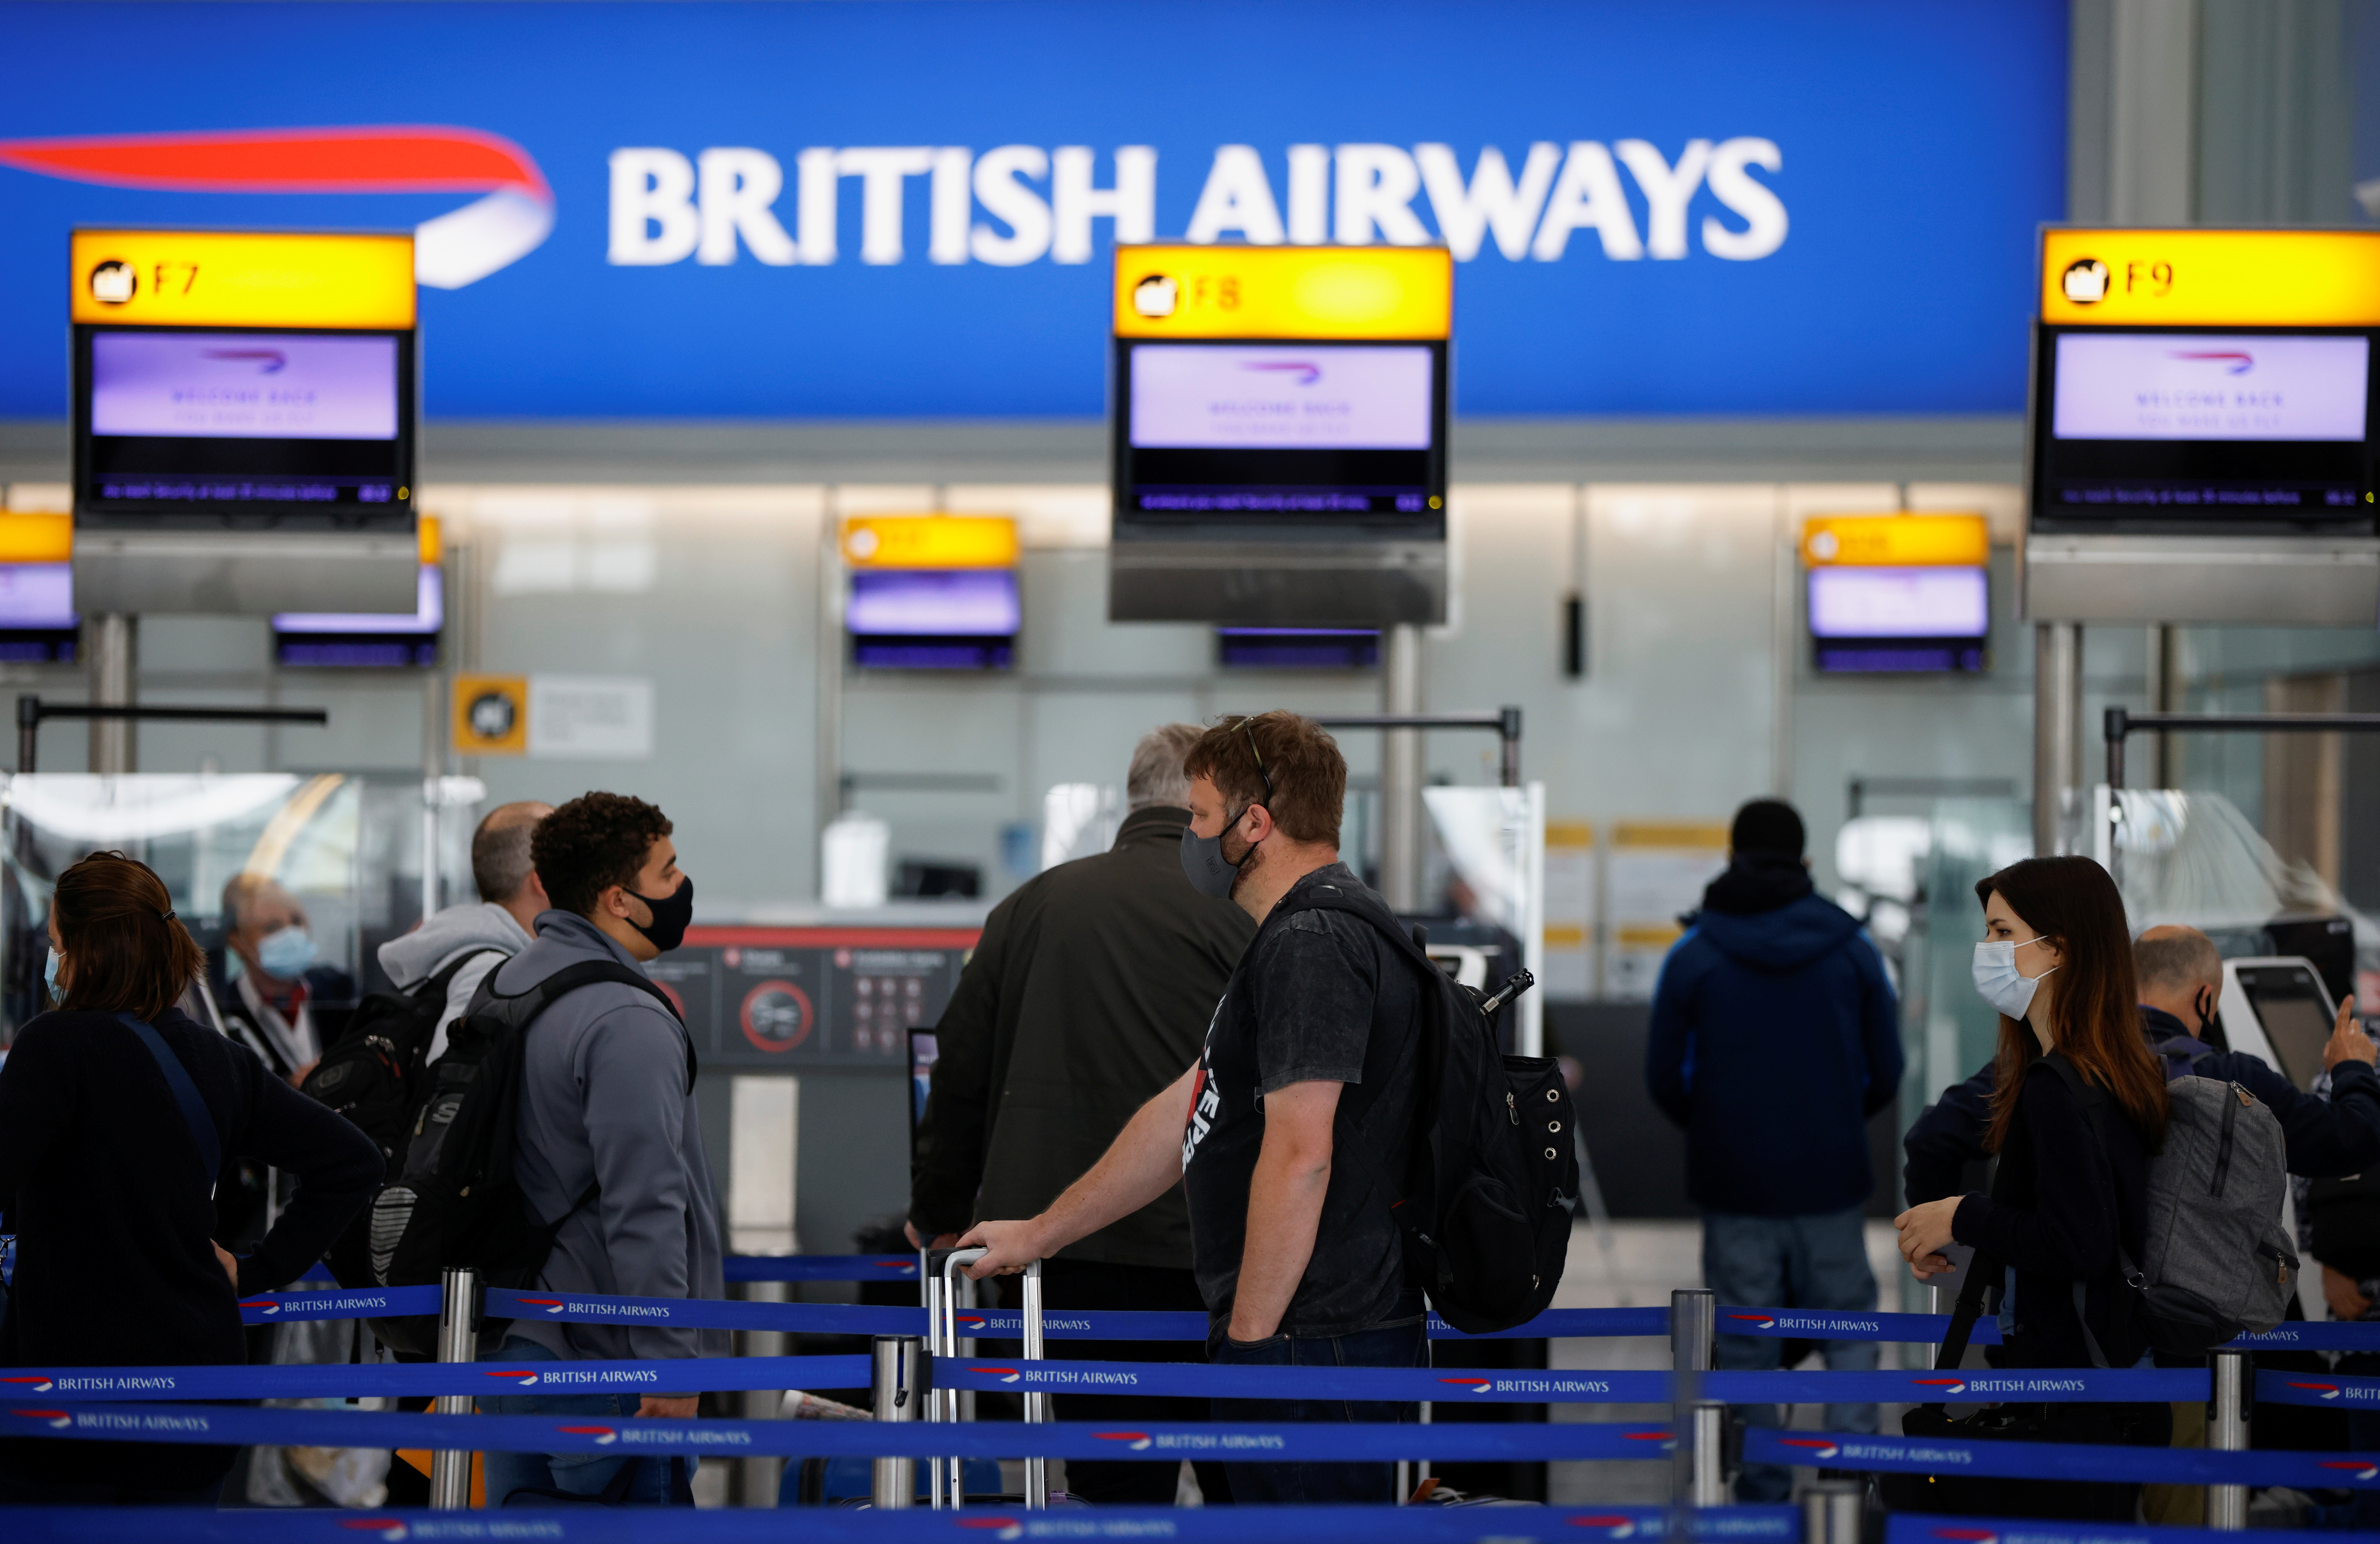 Passengers stand in a queue to the British Airways check-in desks in the departures area of Terminal 5 at Heathrow Airport in London, Britain, May 17, 2021. REUTERS/John Sibley/File photo